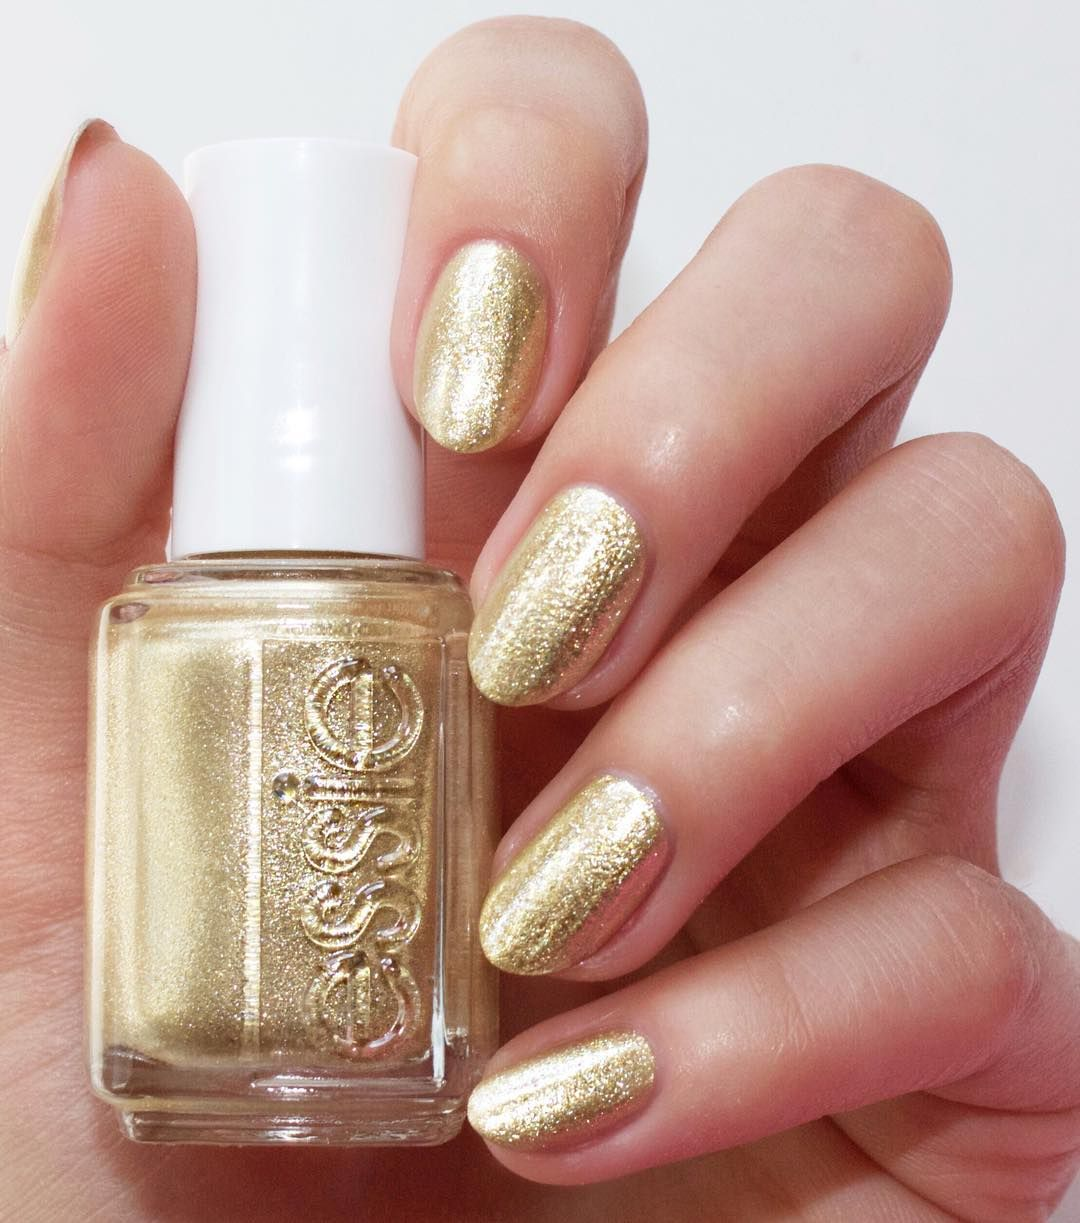 Pin by essie on winter wonderland | Pinterest | Metallic gold ...